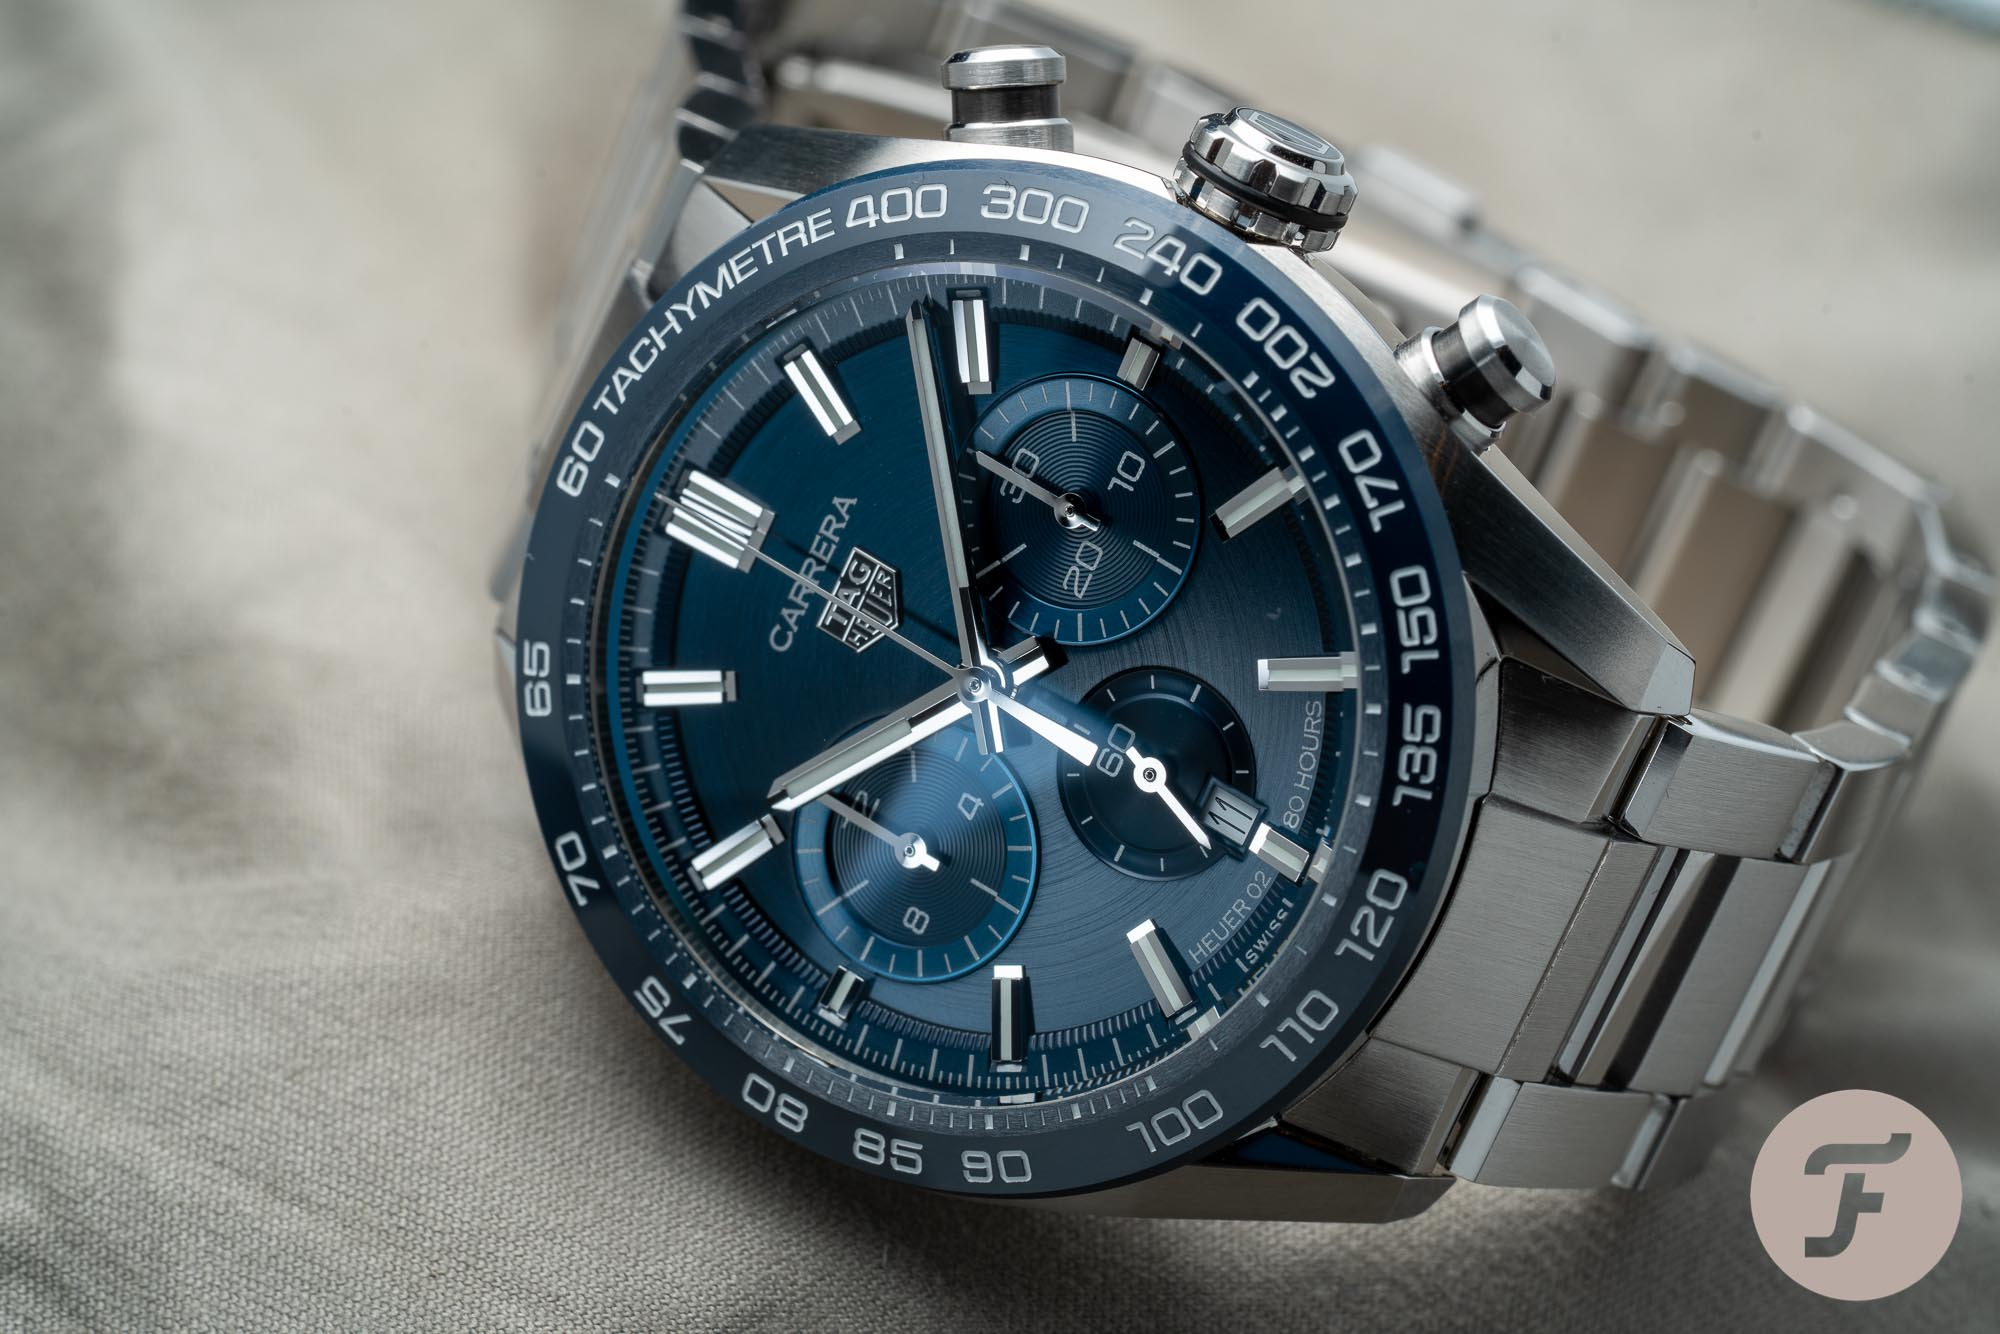 TAG Heuer Carrera Sport Hands-On Replica Watch Review